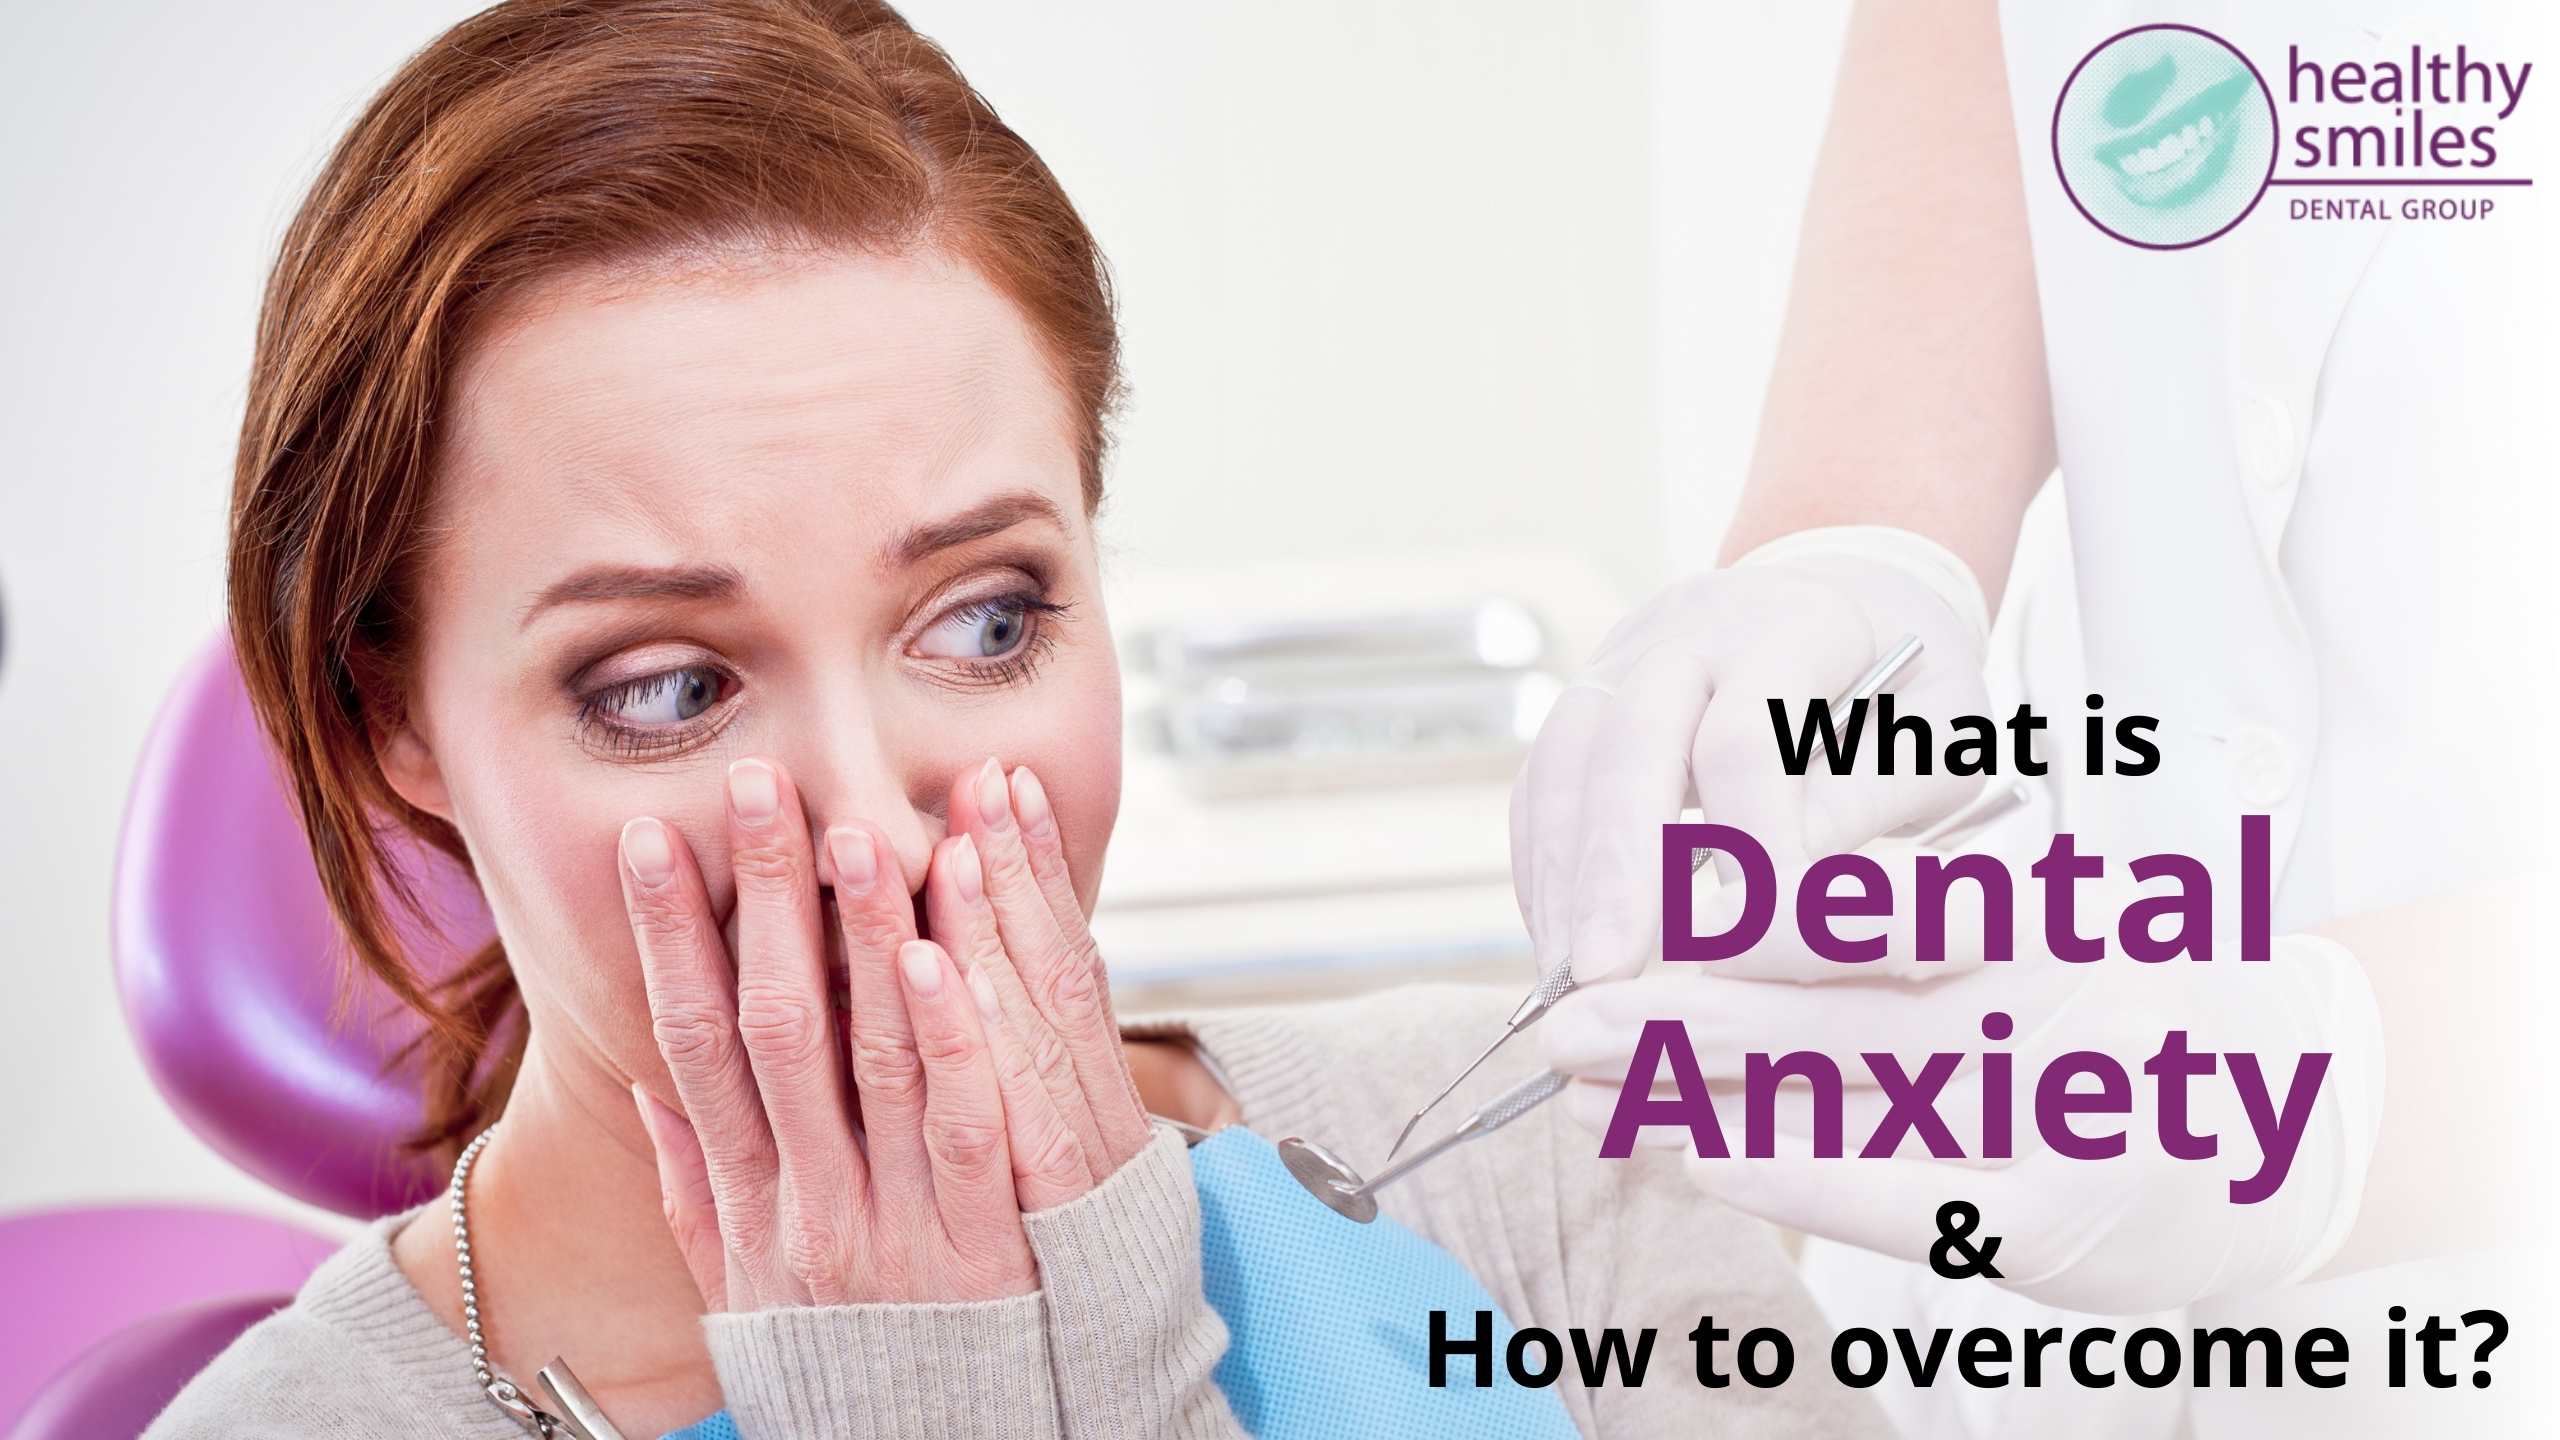 What is Dental Anxiety and How Can You Overcome it?